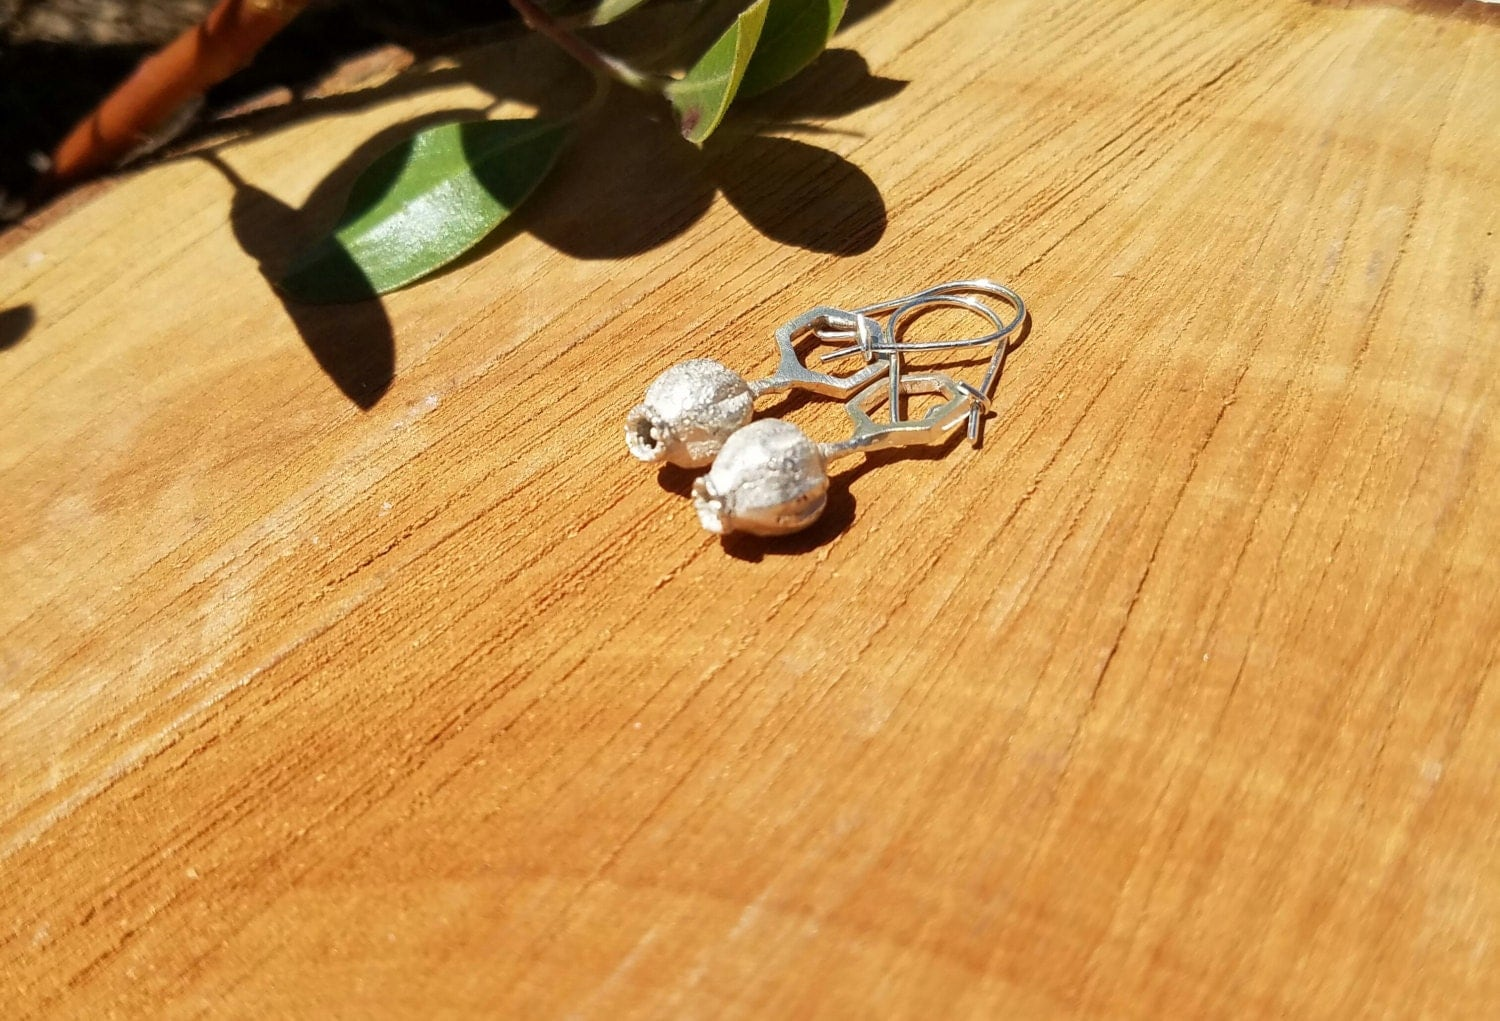 Pacific Madrone Flower Hexagon Earrings - Northern California Forest Art Jewelry in Recycled Sterling Silver